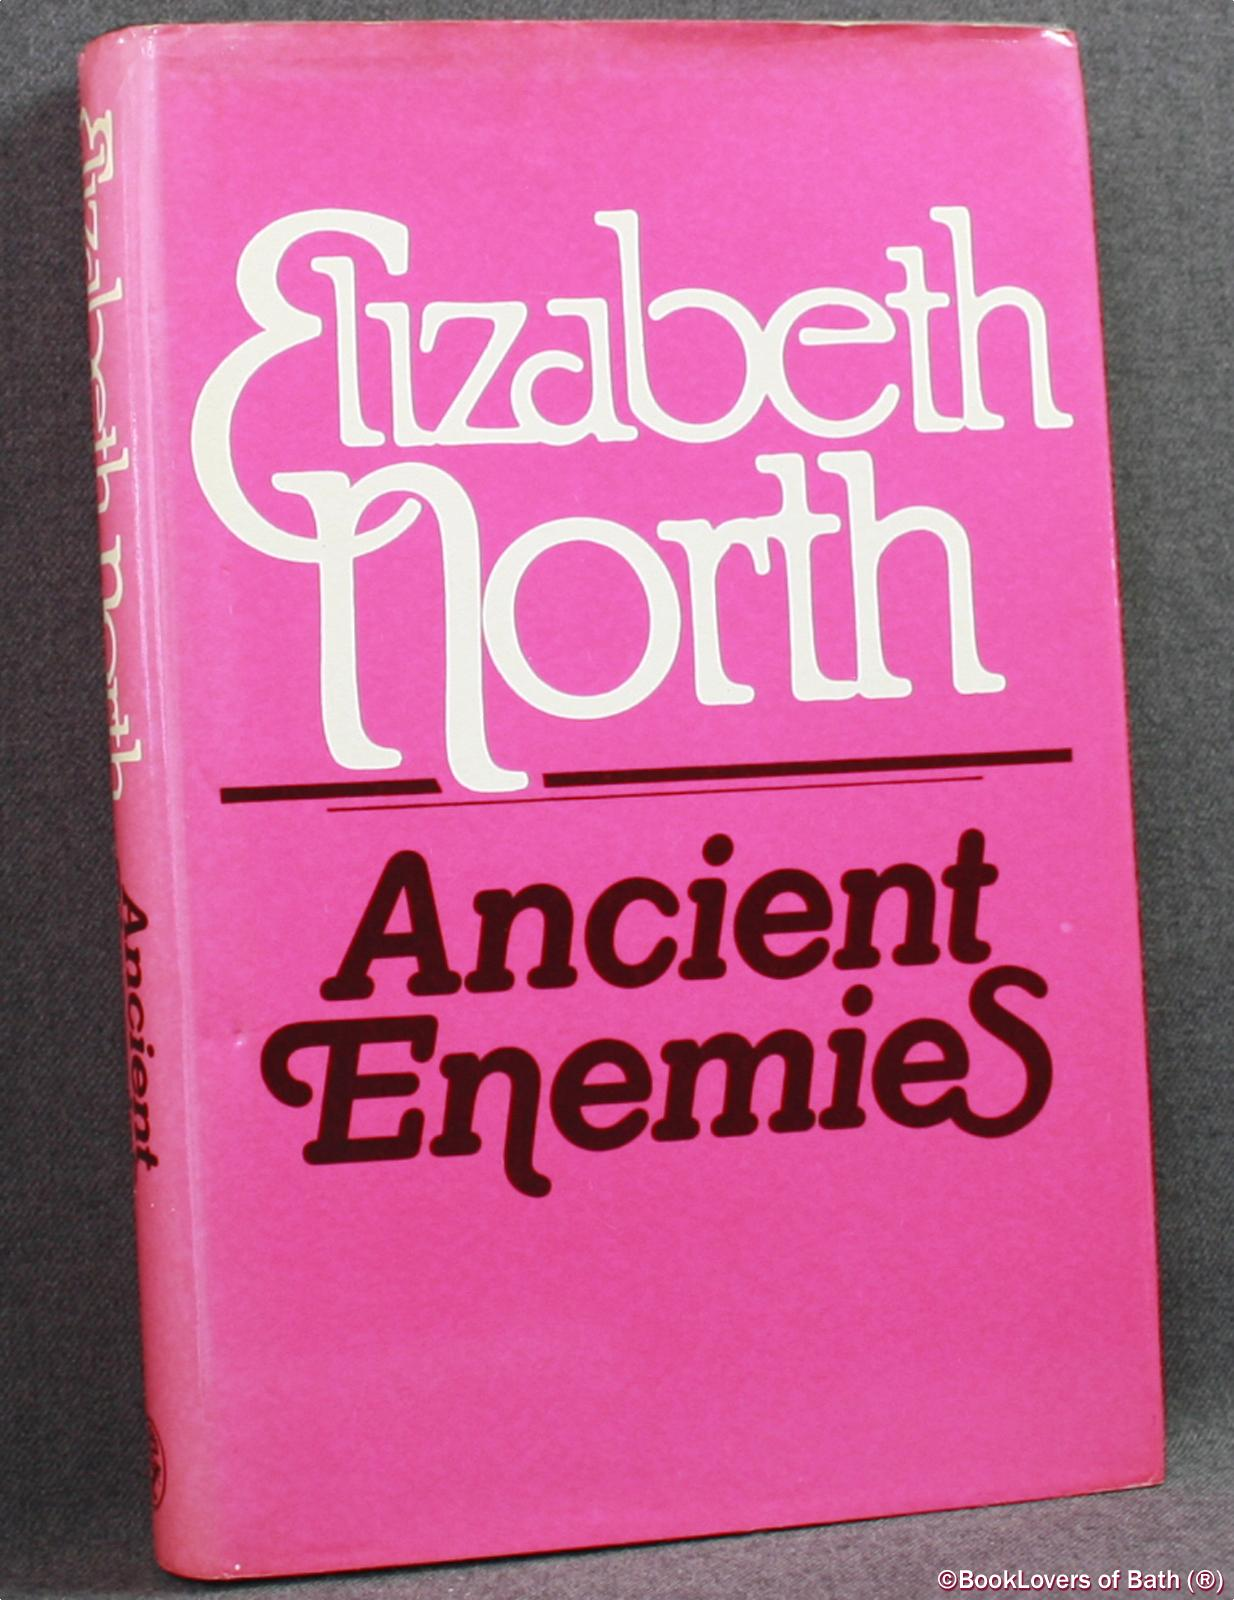 Ancient Enemies - Elizabeth North